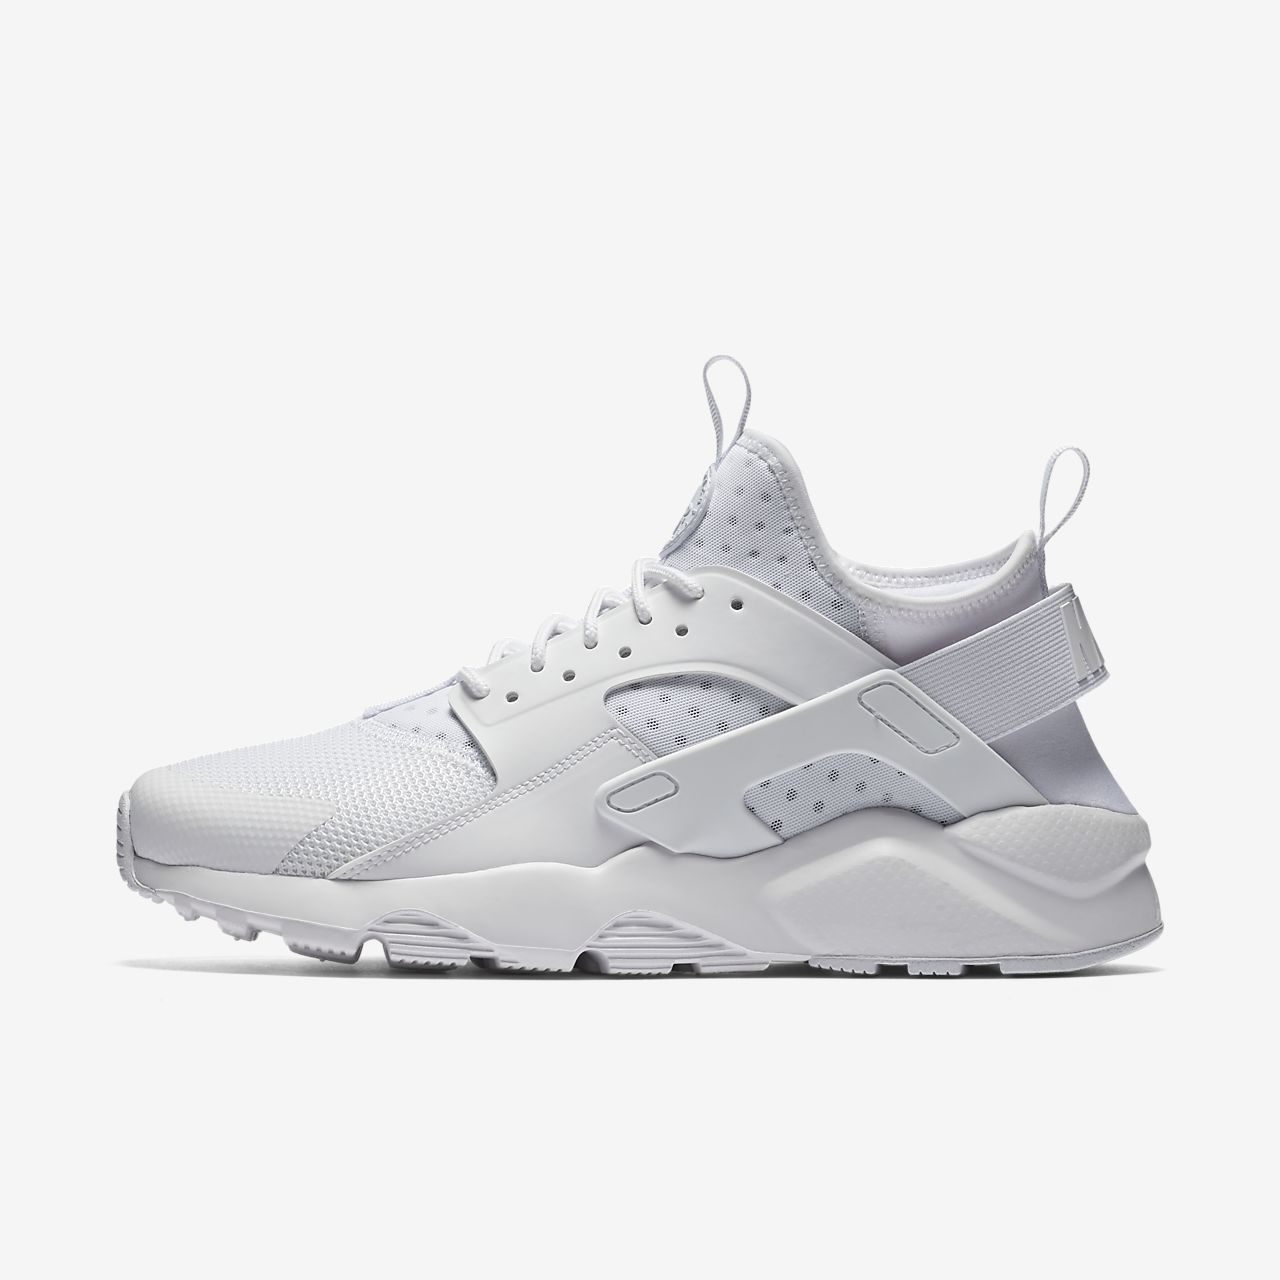 19edd5b3d7d8 Nike Air Huarache Ultra Men s Shoe. Nike.com AU